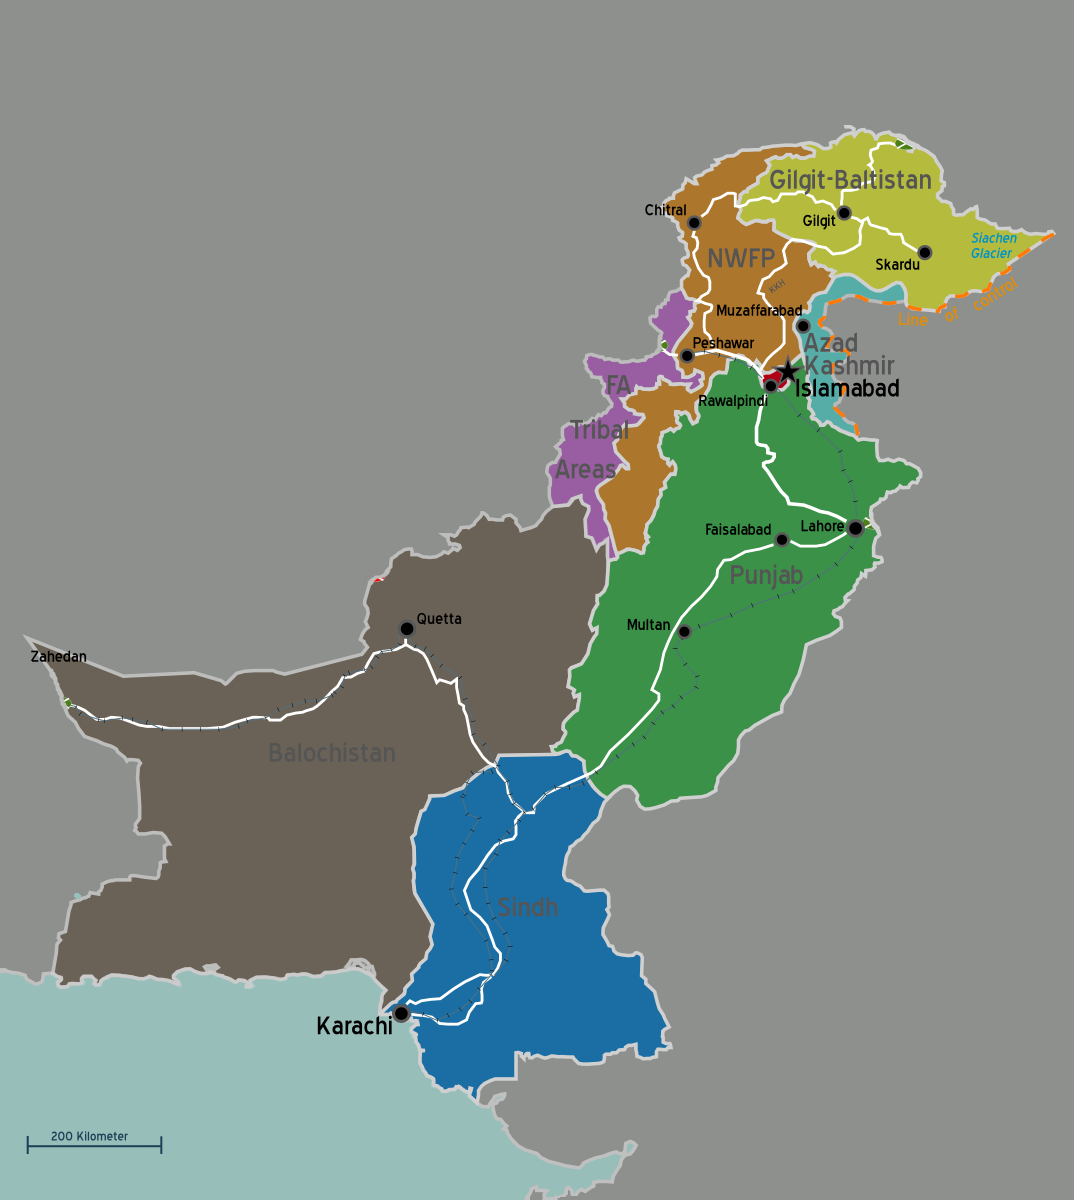 Regionen in Pakistan